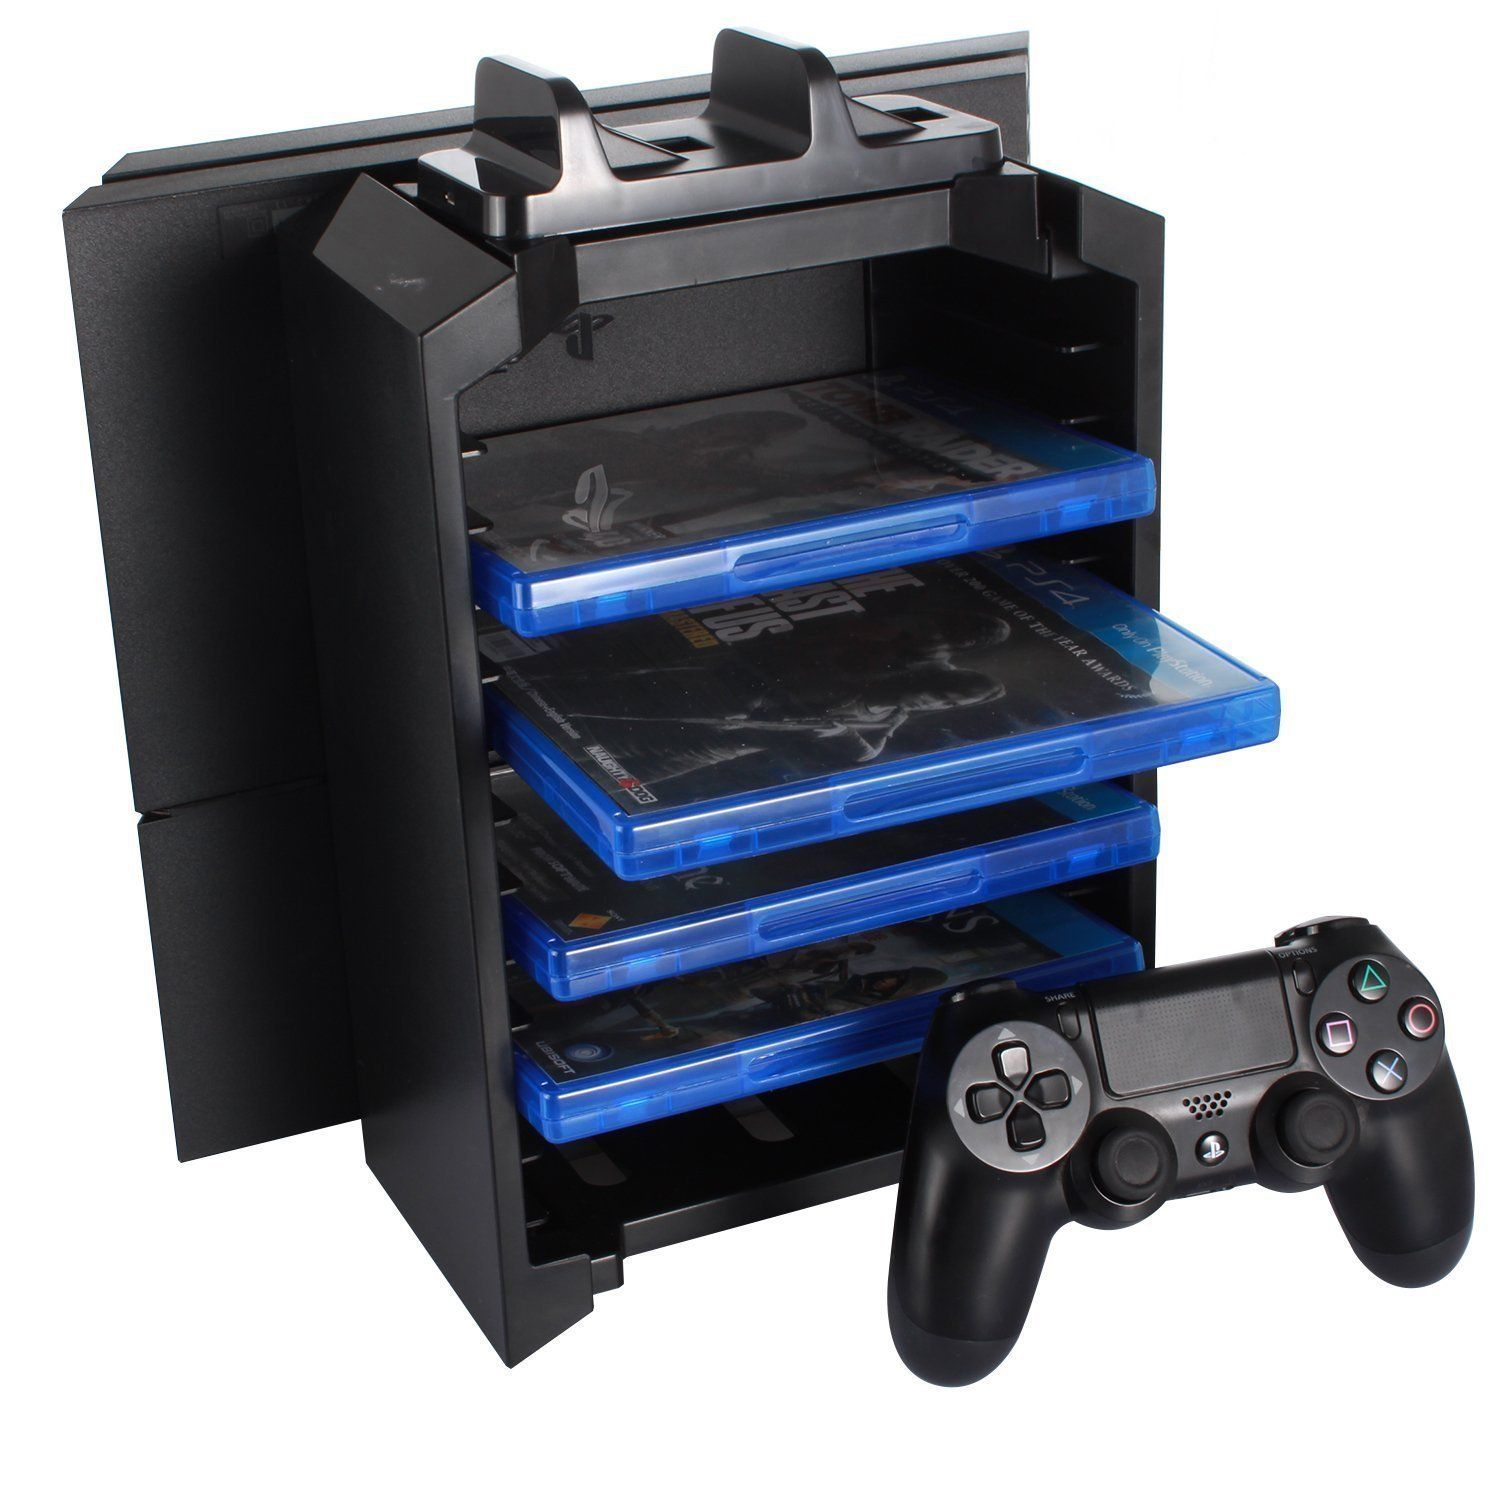 Konky Ps4 3 En 1 Multifonctions Station Playstation 4 Ps4 Slim Ps4 Pro Console Support Stand Vertical Ps4 Controle Playstation Stockage De Jeu Console